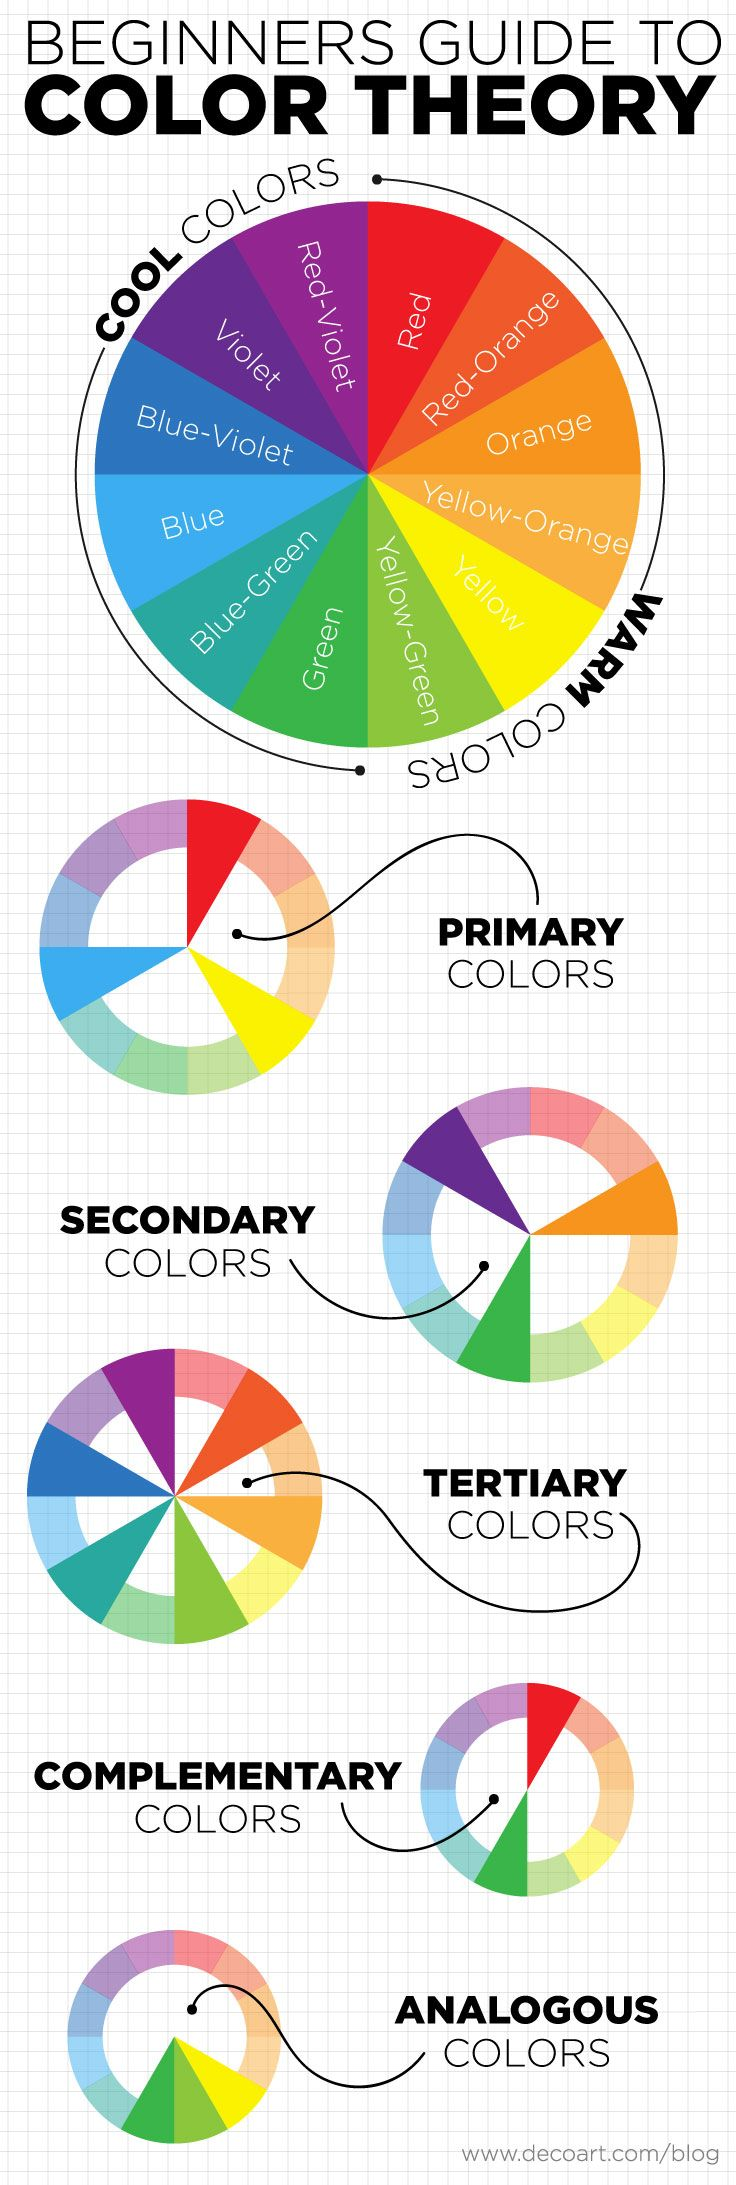 Color circle art publishing - Decoart Blog Color Theory Basics The Color Wheel